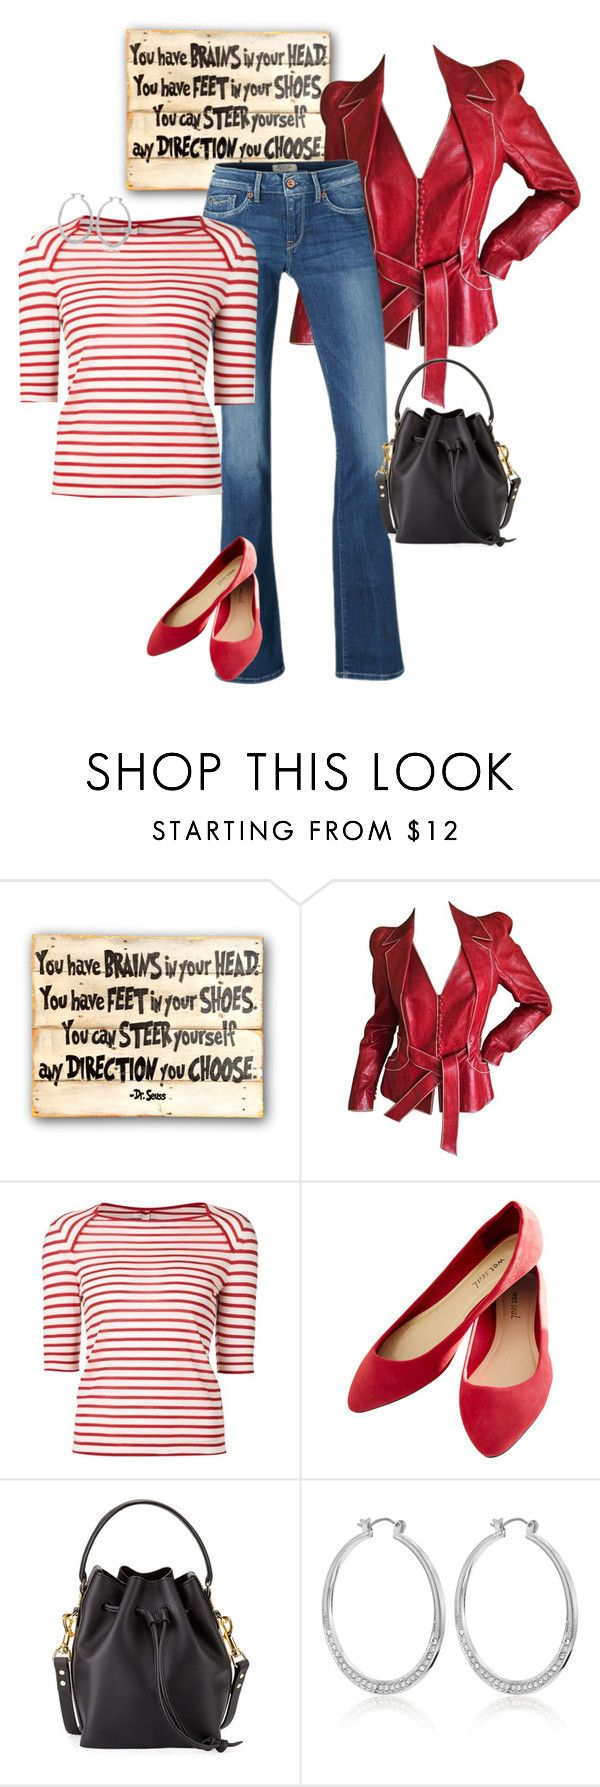 """Happy Birthday!"" by toots2271 ❤ liked on Polyvore featuring John Galliano, Pepe Jeans London, Yves Saint Laurent, Sophie Hulme and White House Black Market"